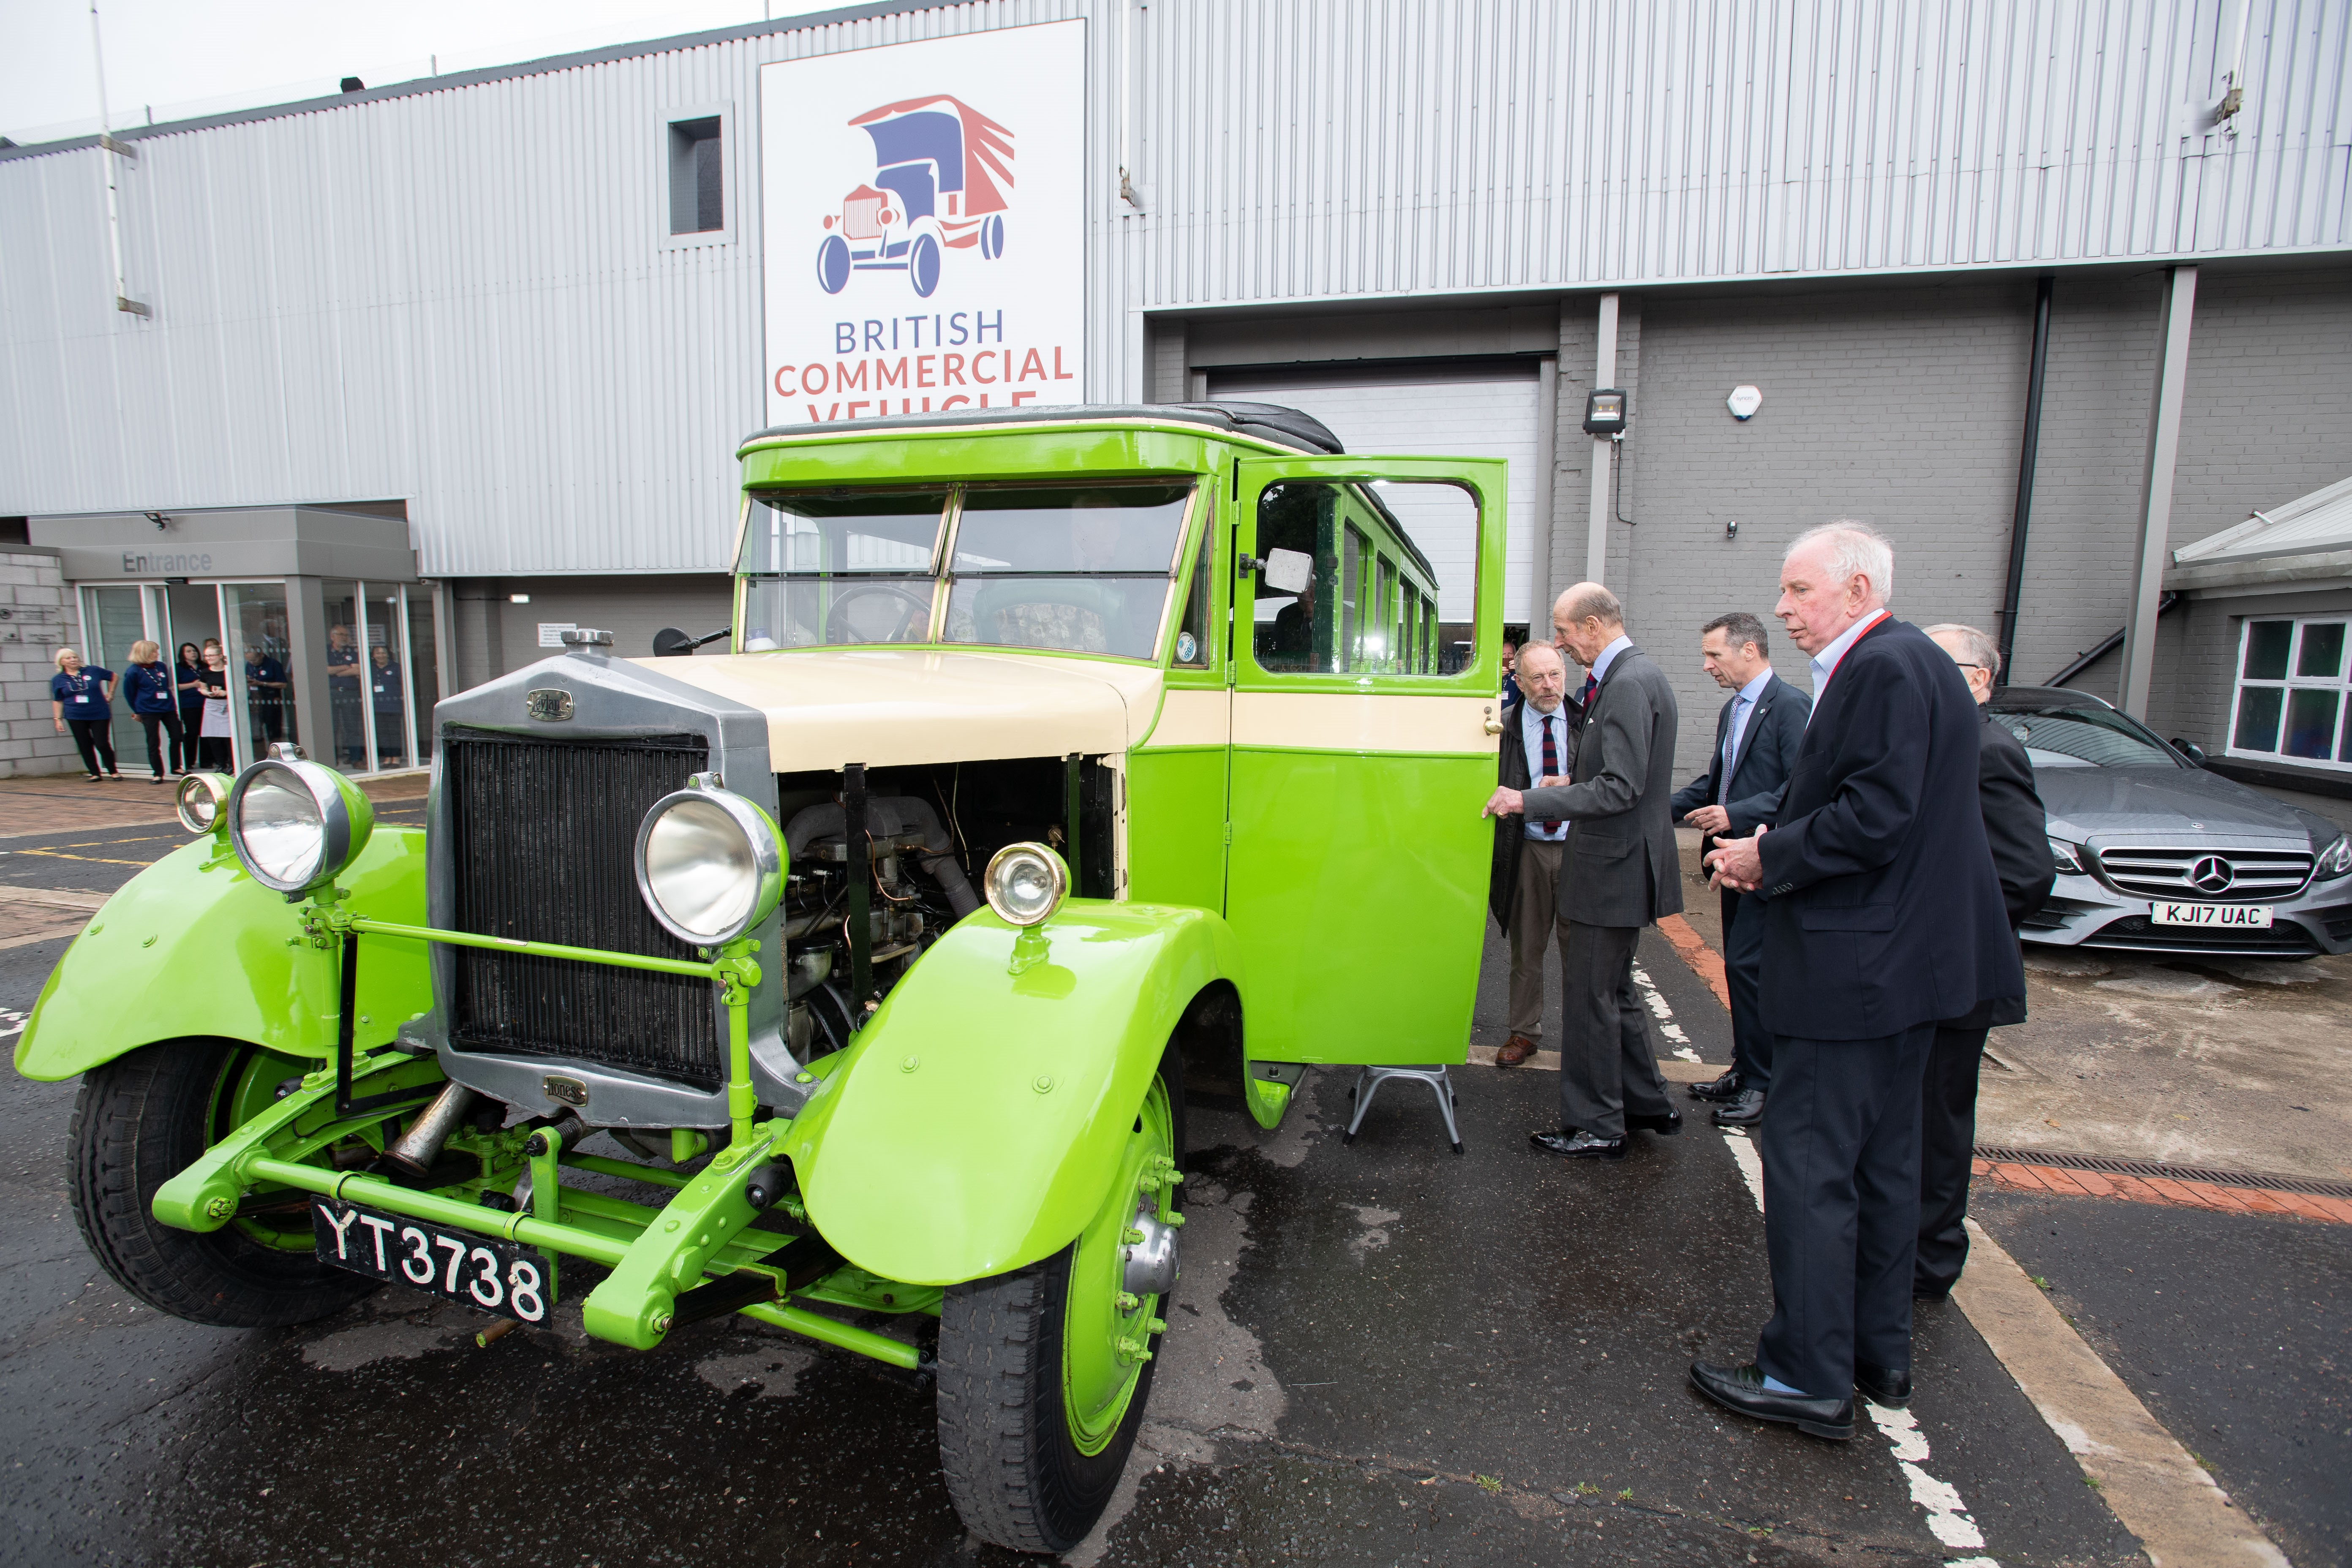 Royal Visit to Leyland by the Duke of Kent